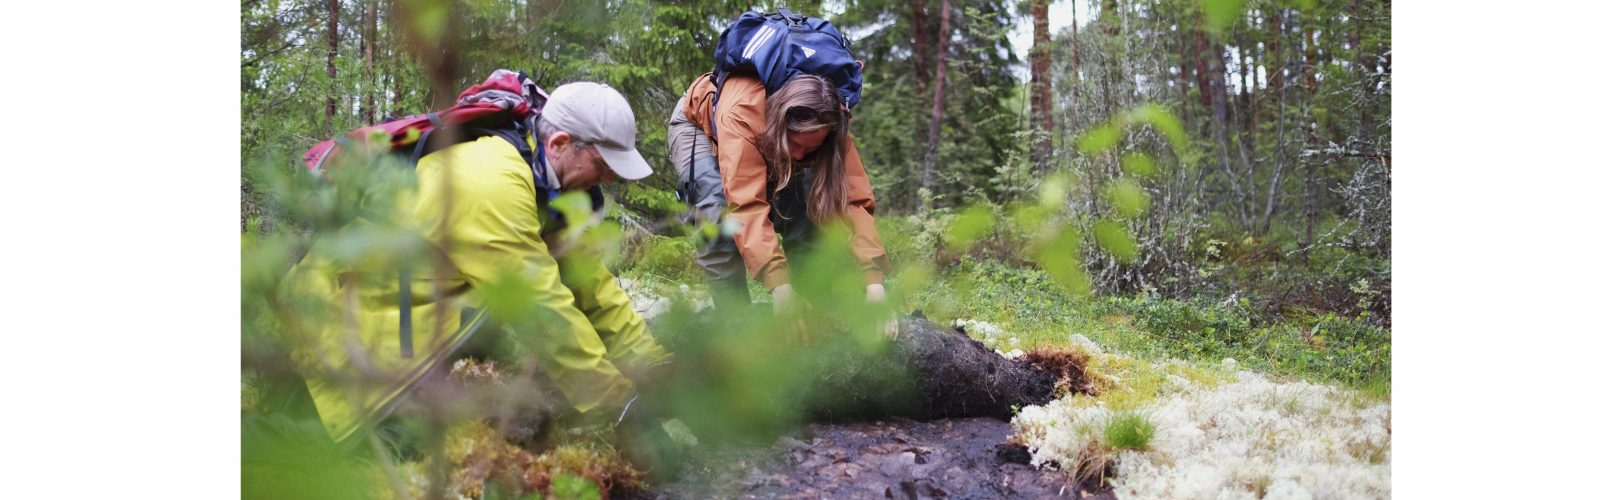 Two researchers pull back moss from a peperite outcrop, Karelia, Russia.